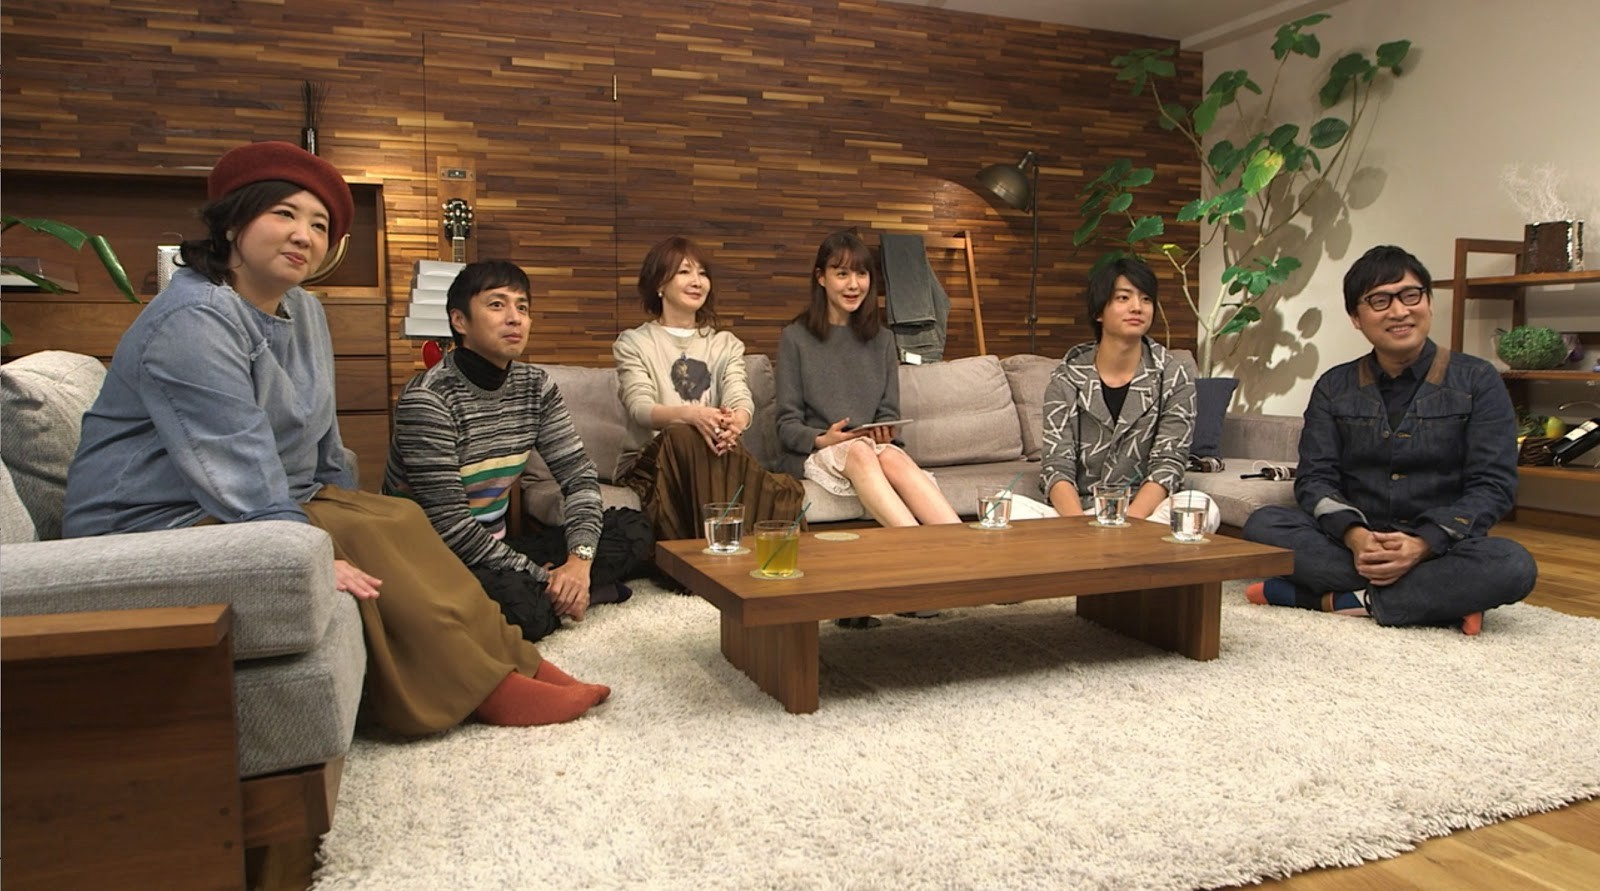 What makes japanese show terrace house a delightful for Terrace japanese show